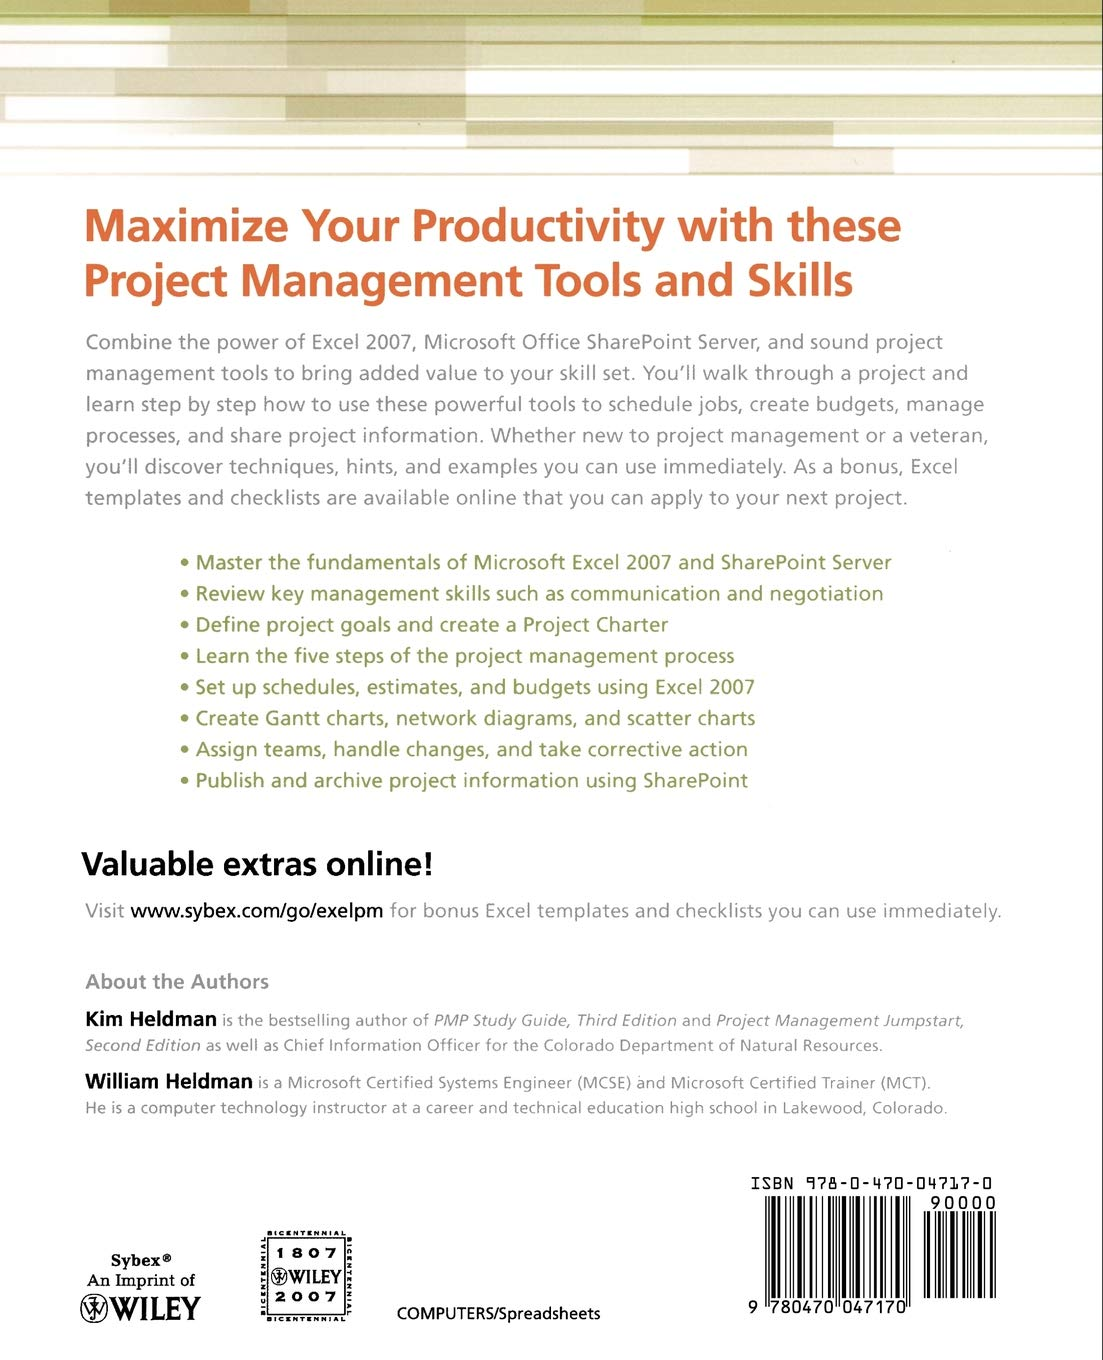 Buy Microsoft Office Excel 2007 for Project Managers Book